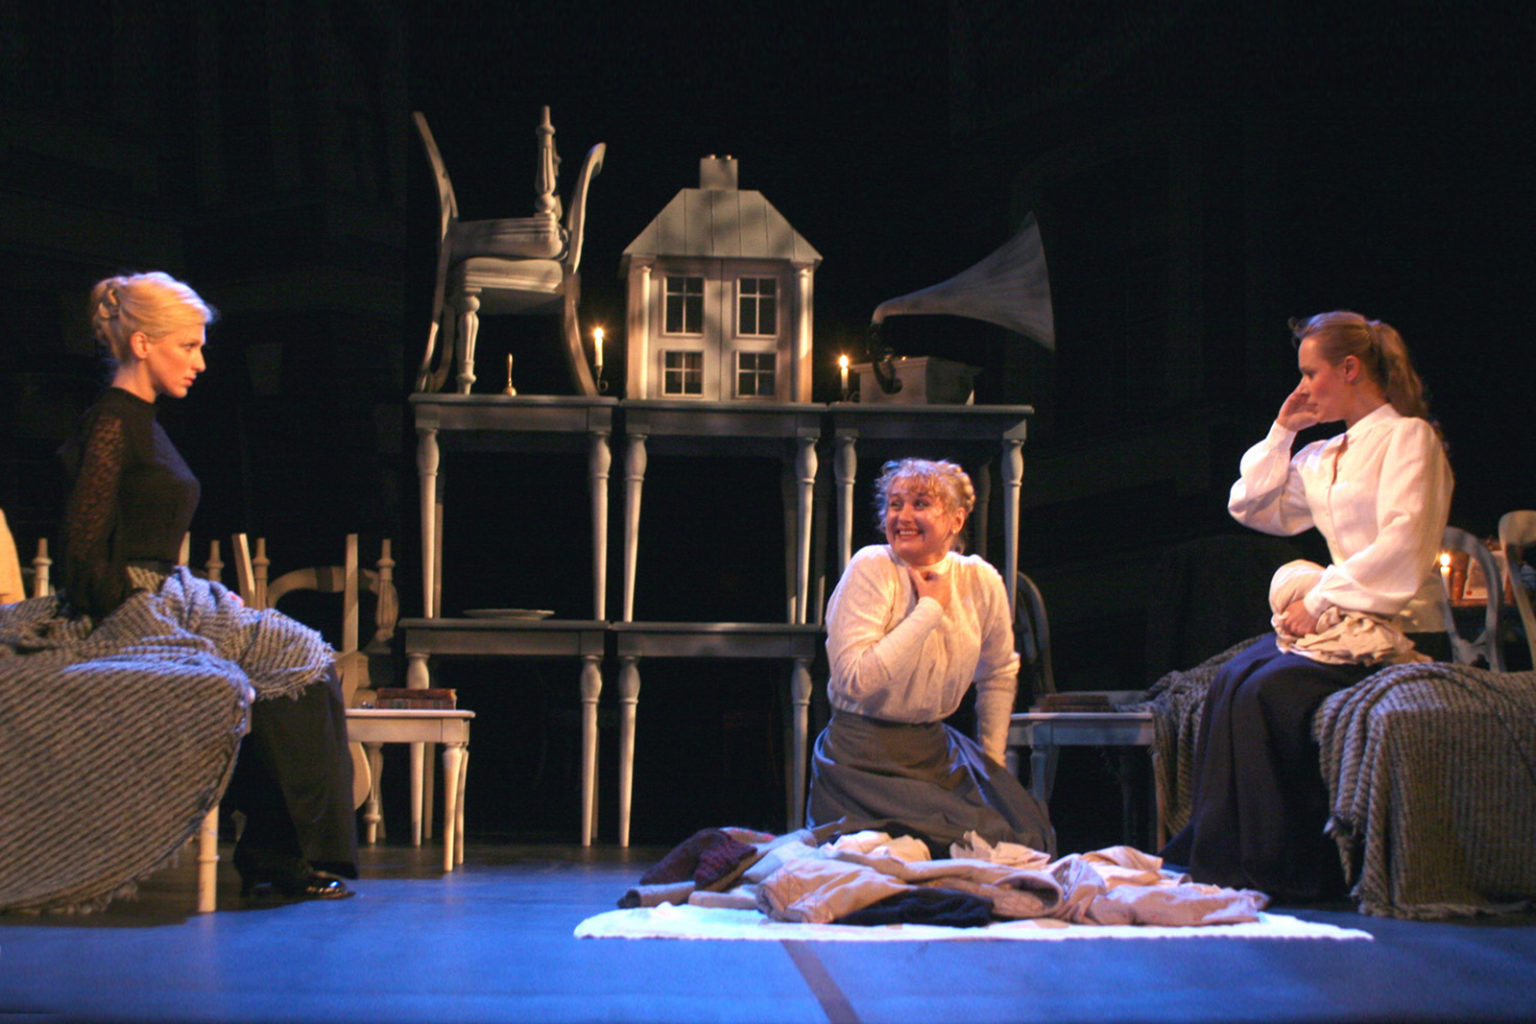 Video clips from Cheek by Jowl's production of Three Sisters